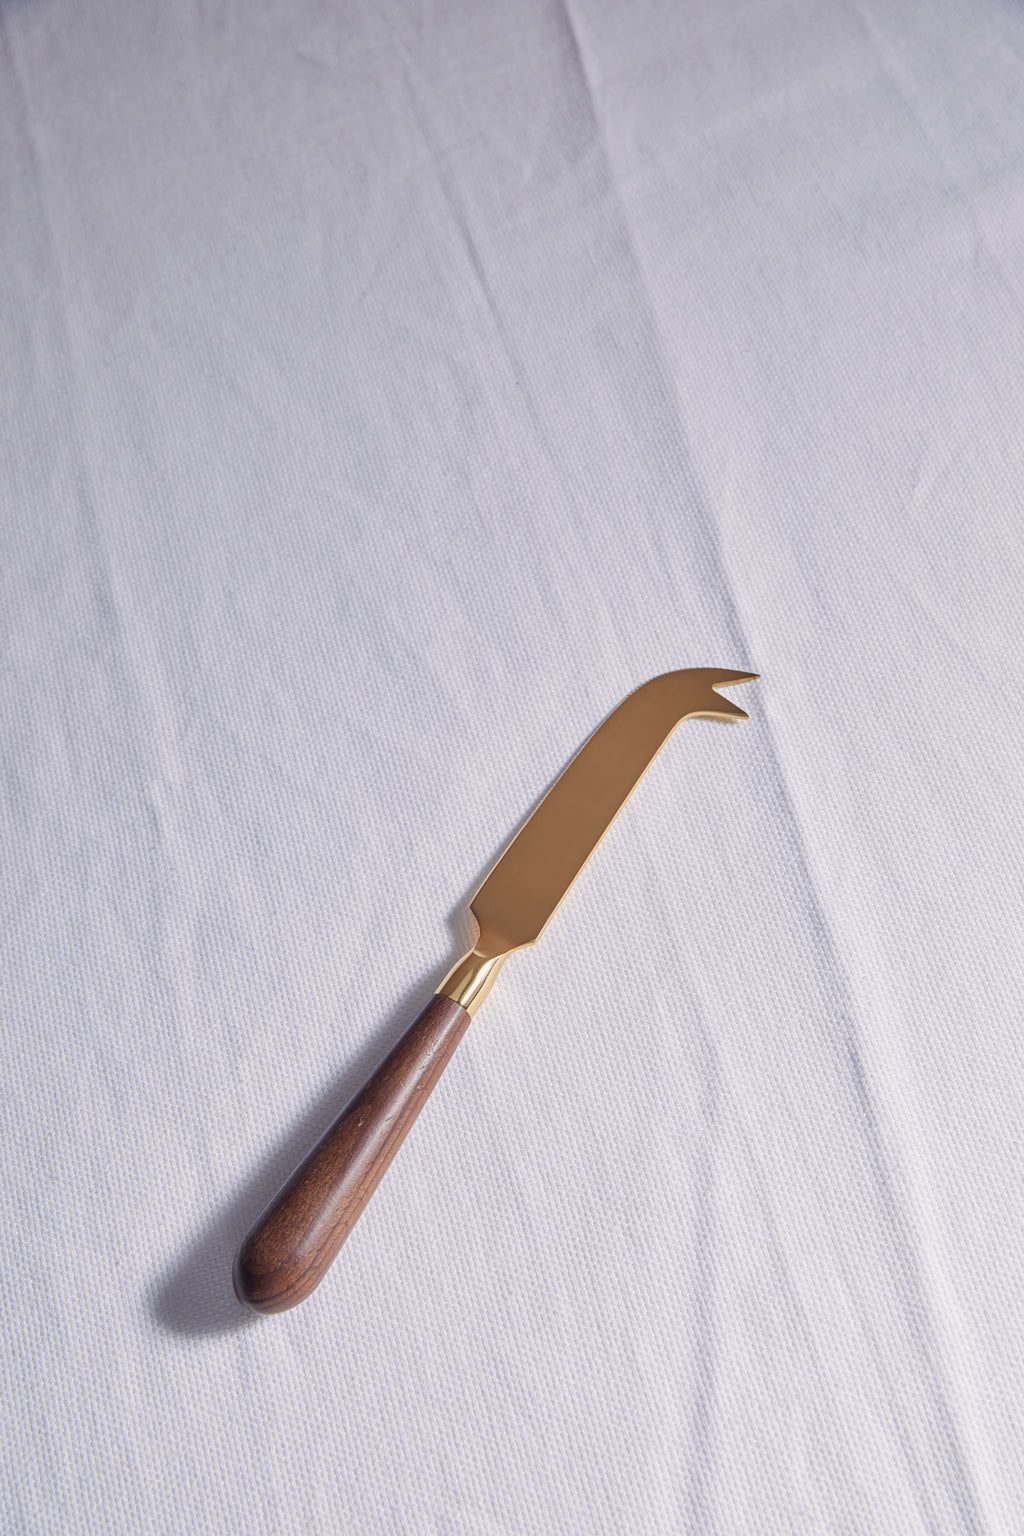 Teak Cheeses Knife